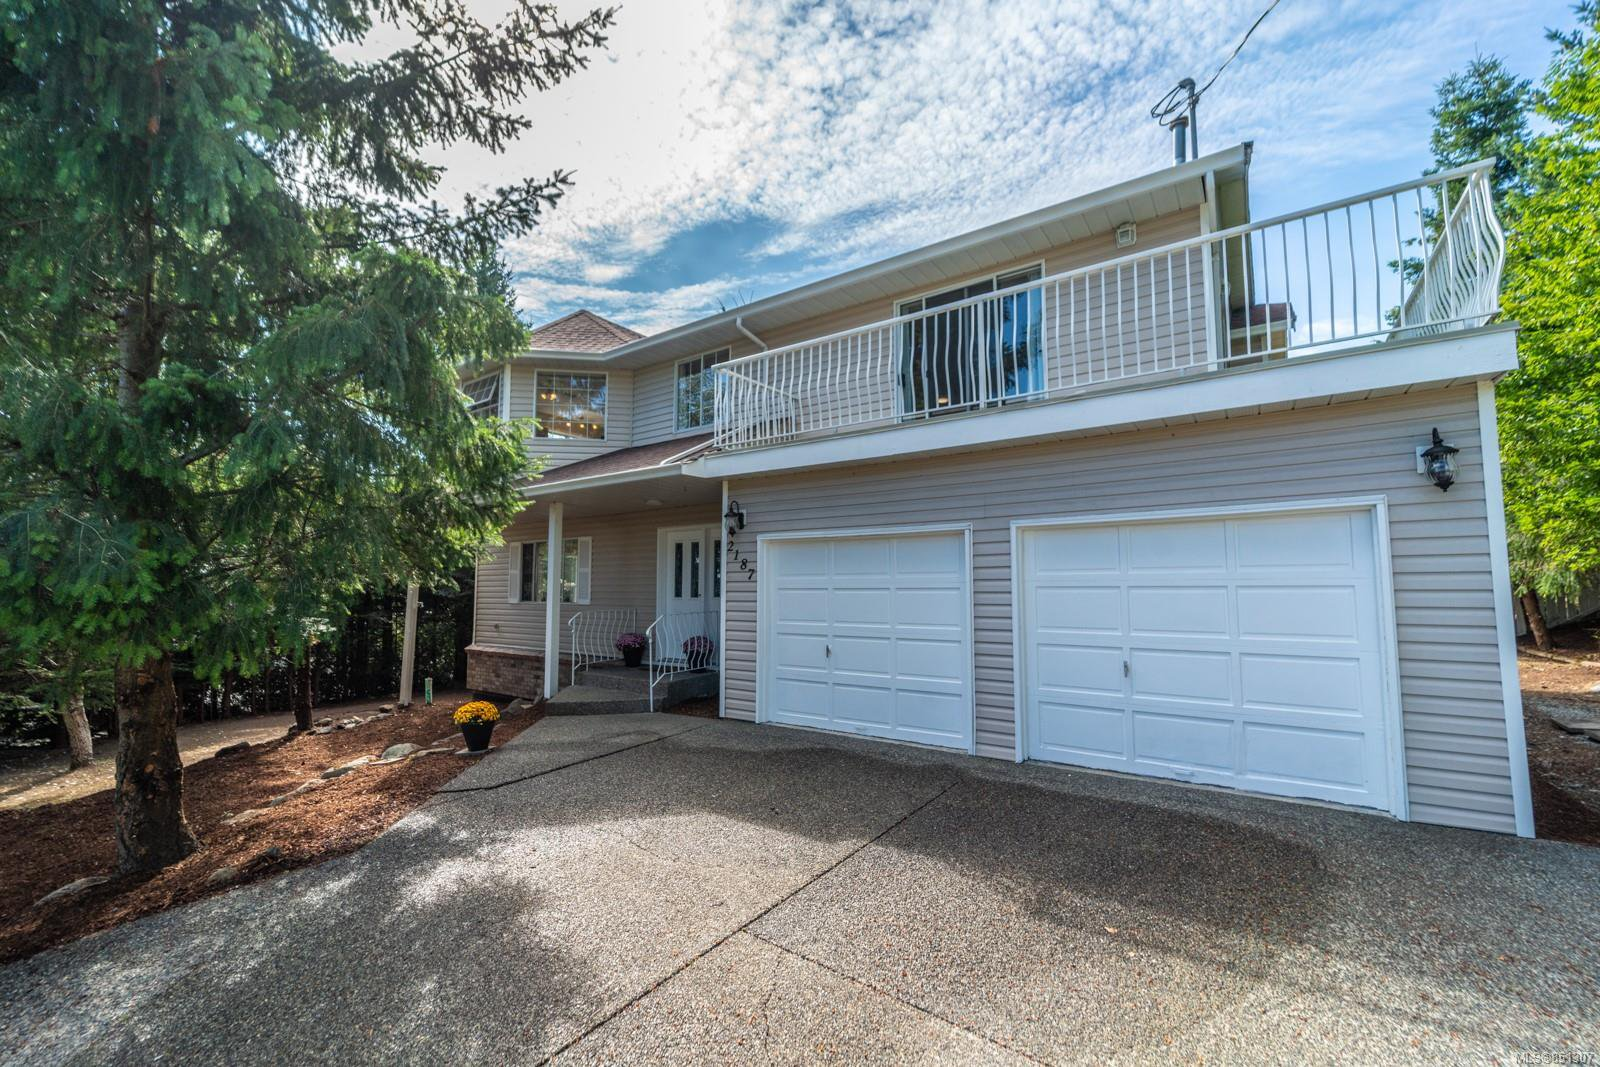 Main Photo: 2187 Stellys Cross Rd in : CS Keating Single Family Detached for sale (Central Saanich)  : MLS®# 851307